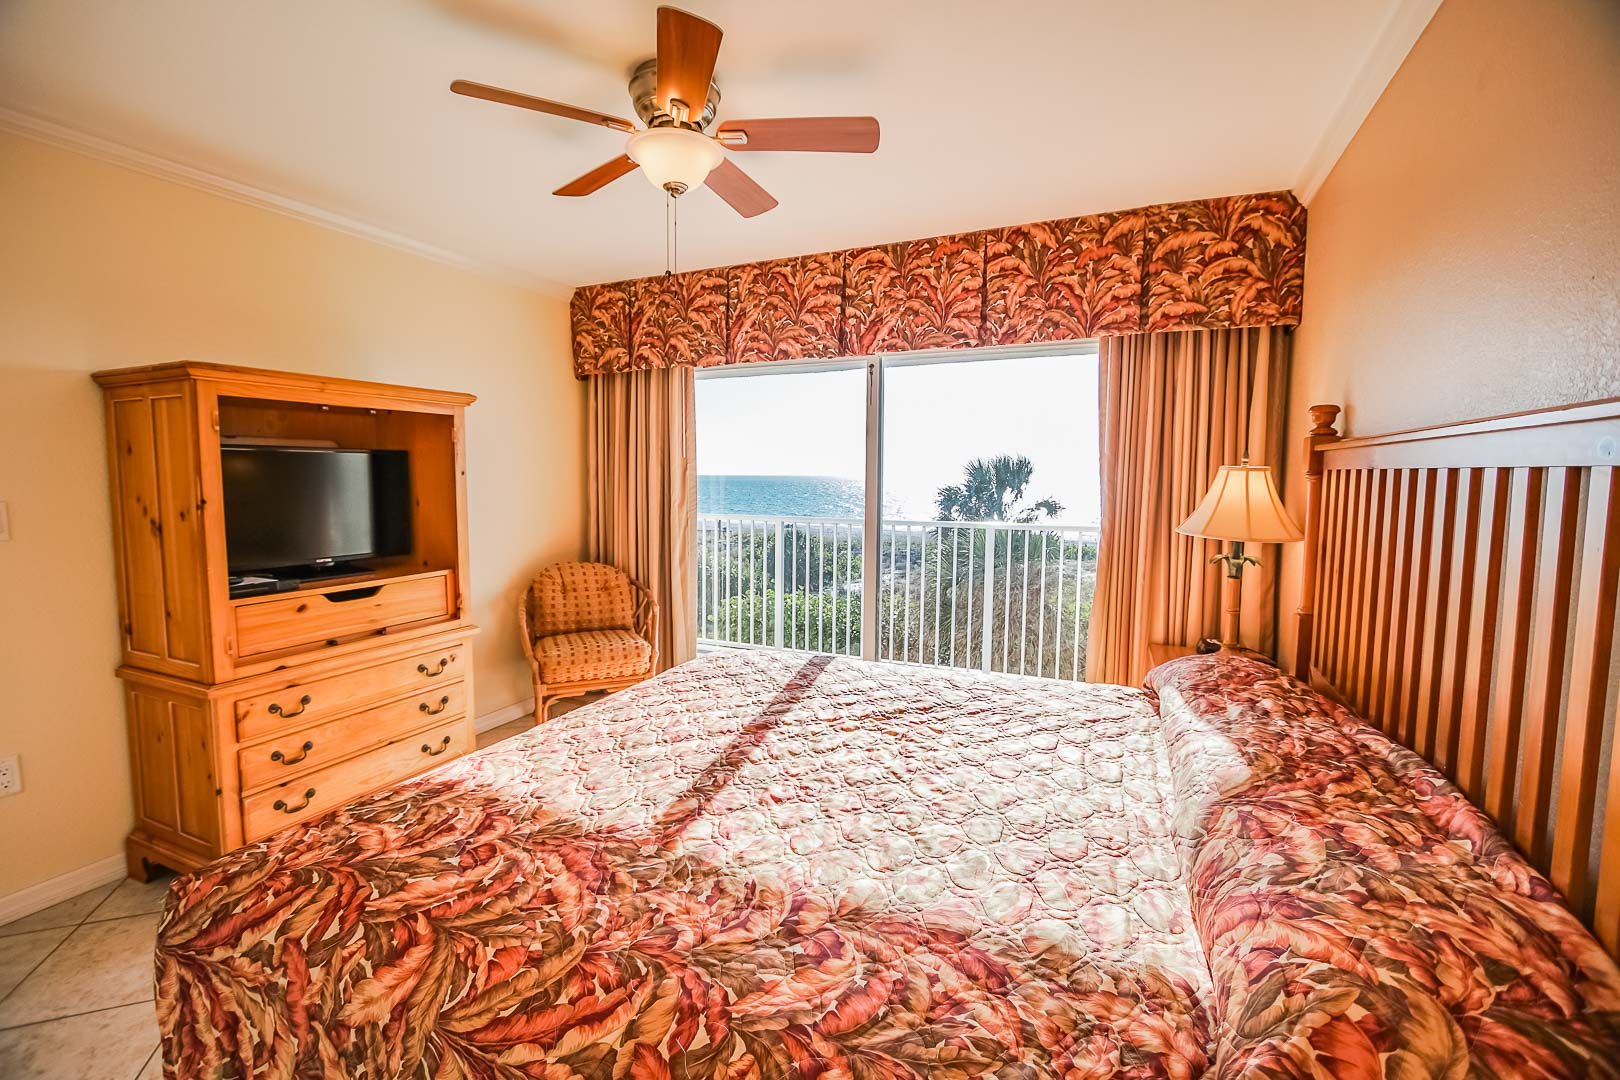 A vibrant bedroom with a balcony view at VRI's Sand Pebble Resort in Treasure Island, Florida.